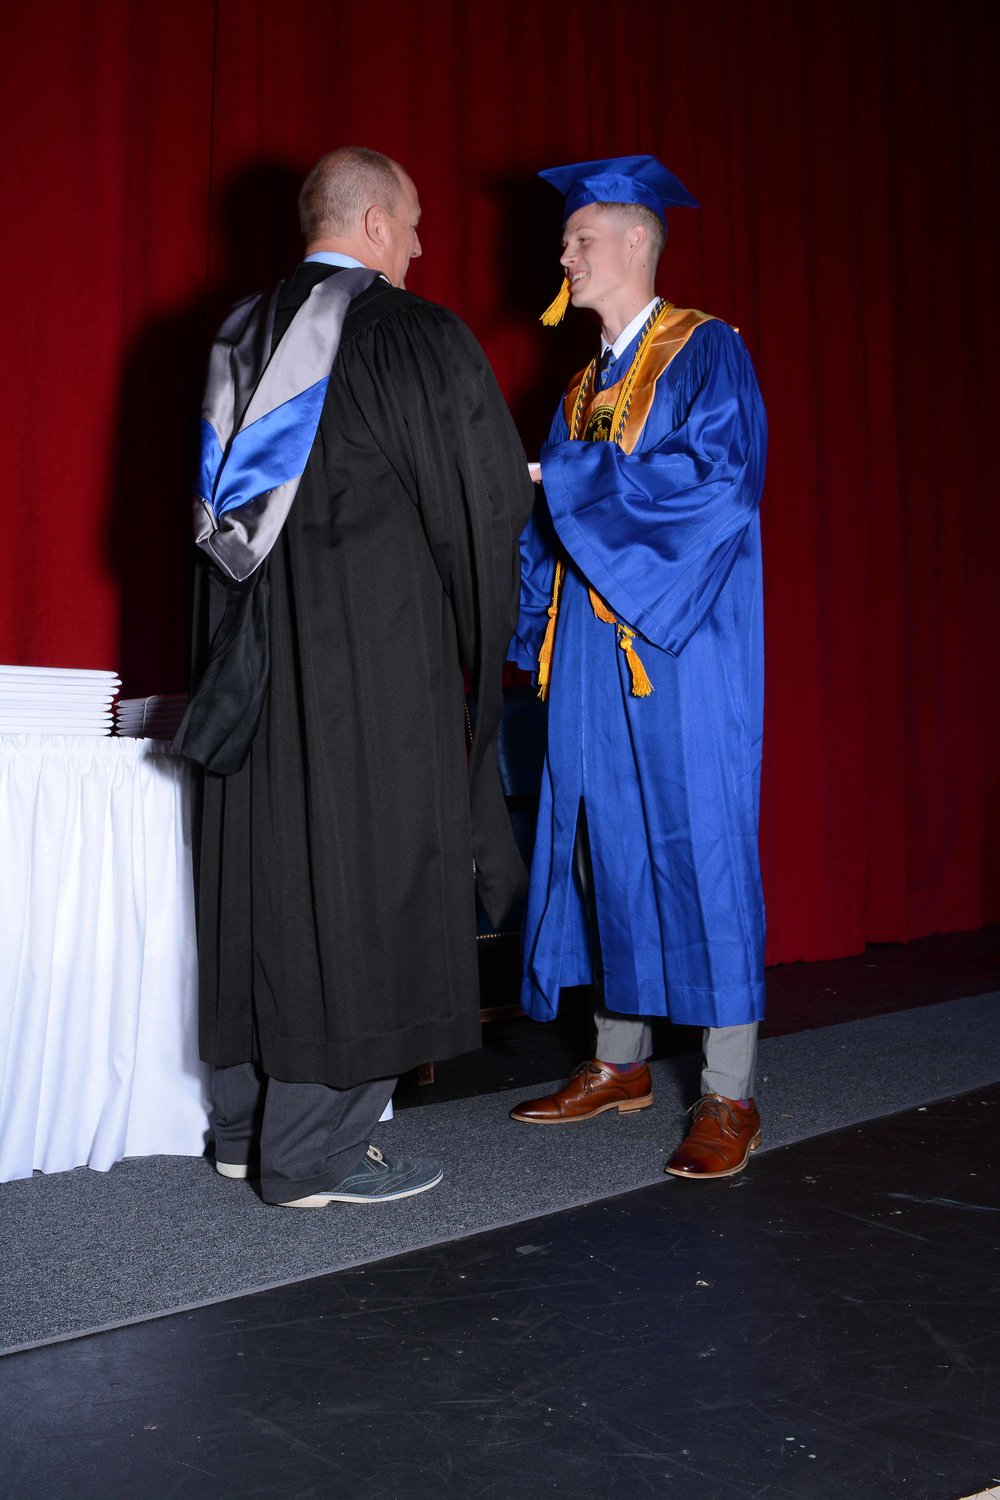 May14 Commencement127.jpg